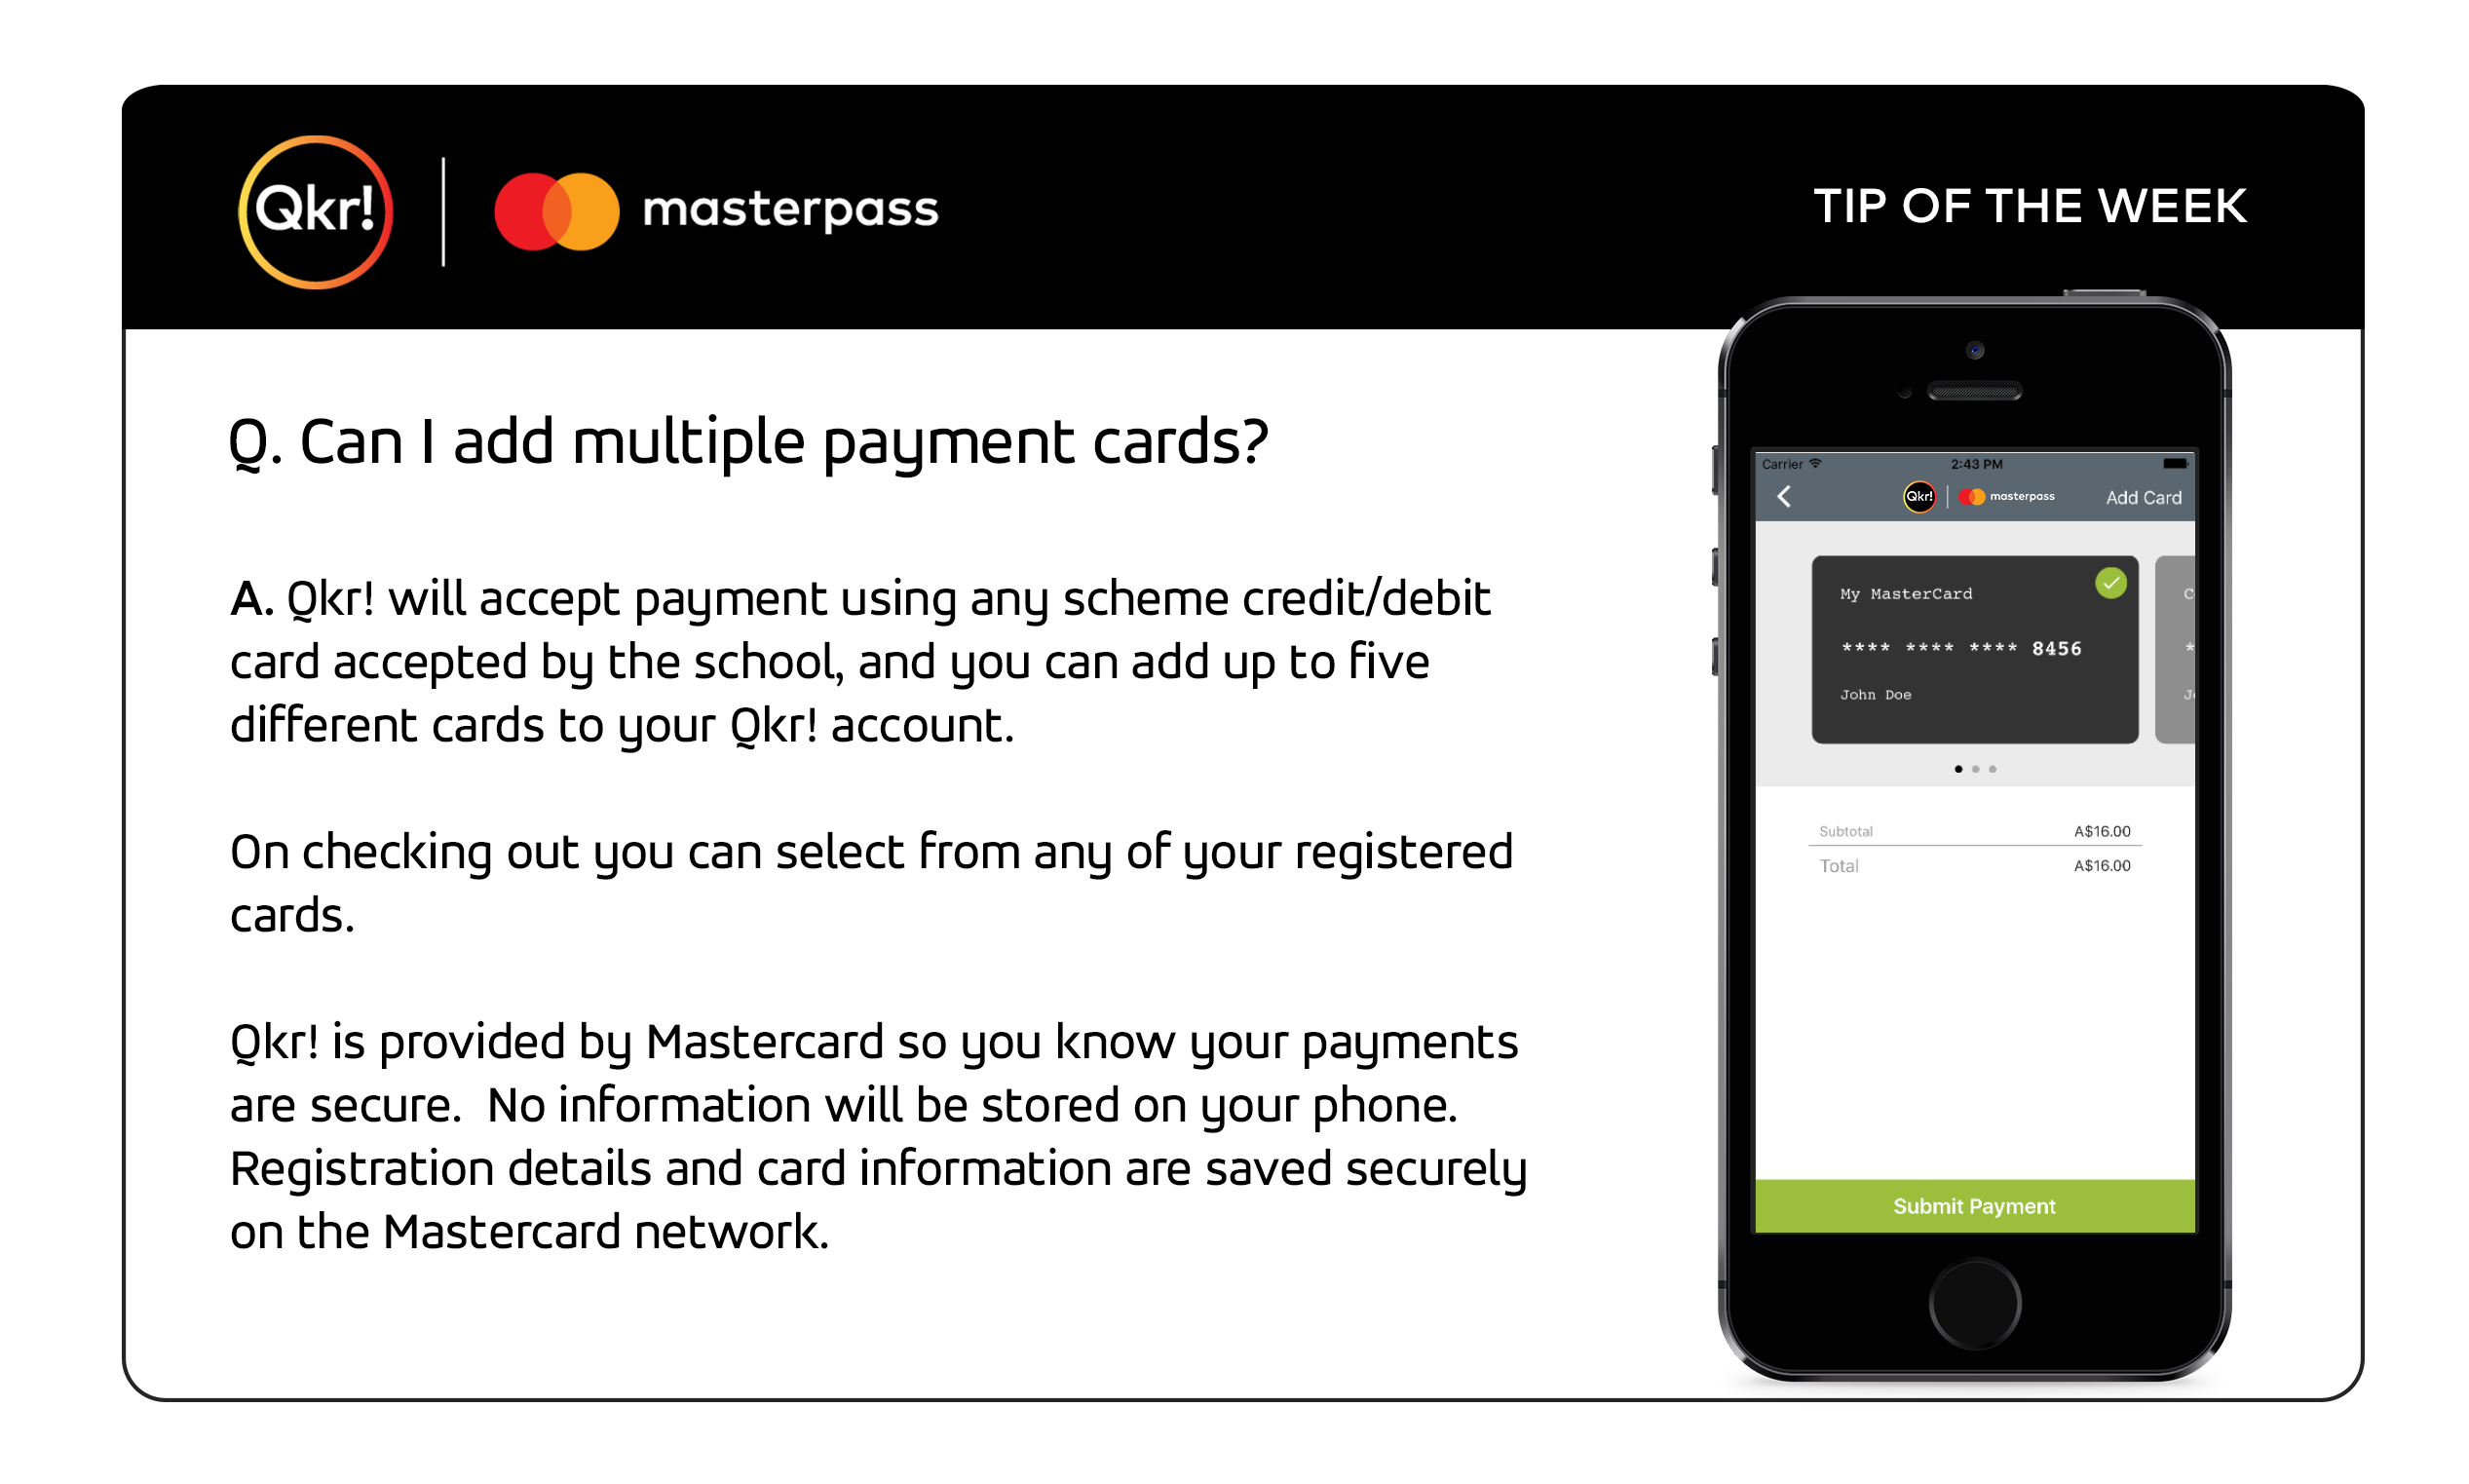 Provides answers to - can I add multiple payment cards?